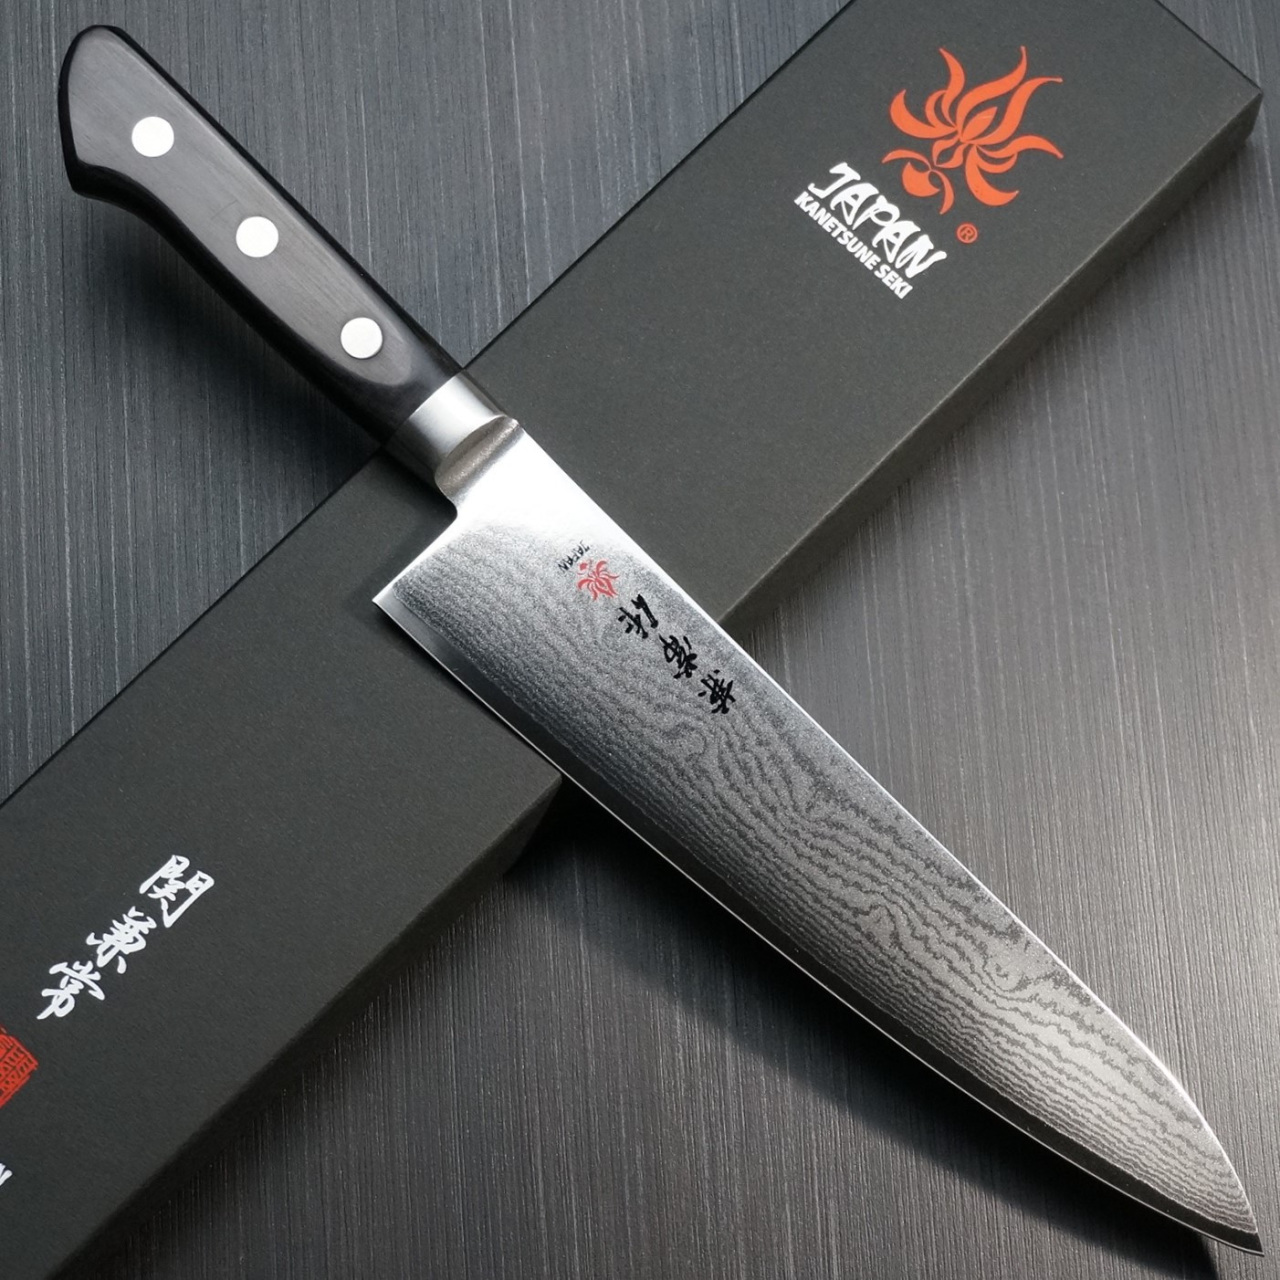 kanestune japanese chef knives chefslocker japanese bgt brand 5 inch japanese style kitchen knife chef knife